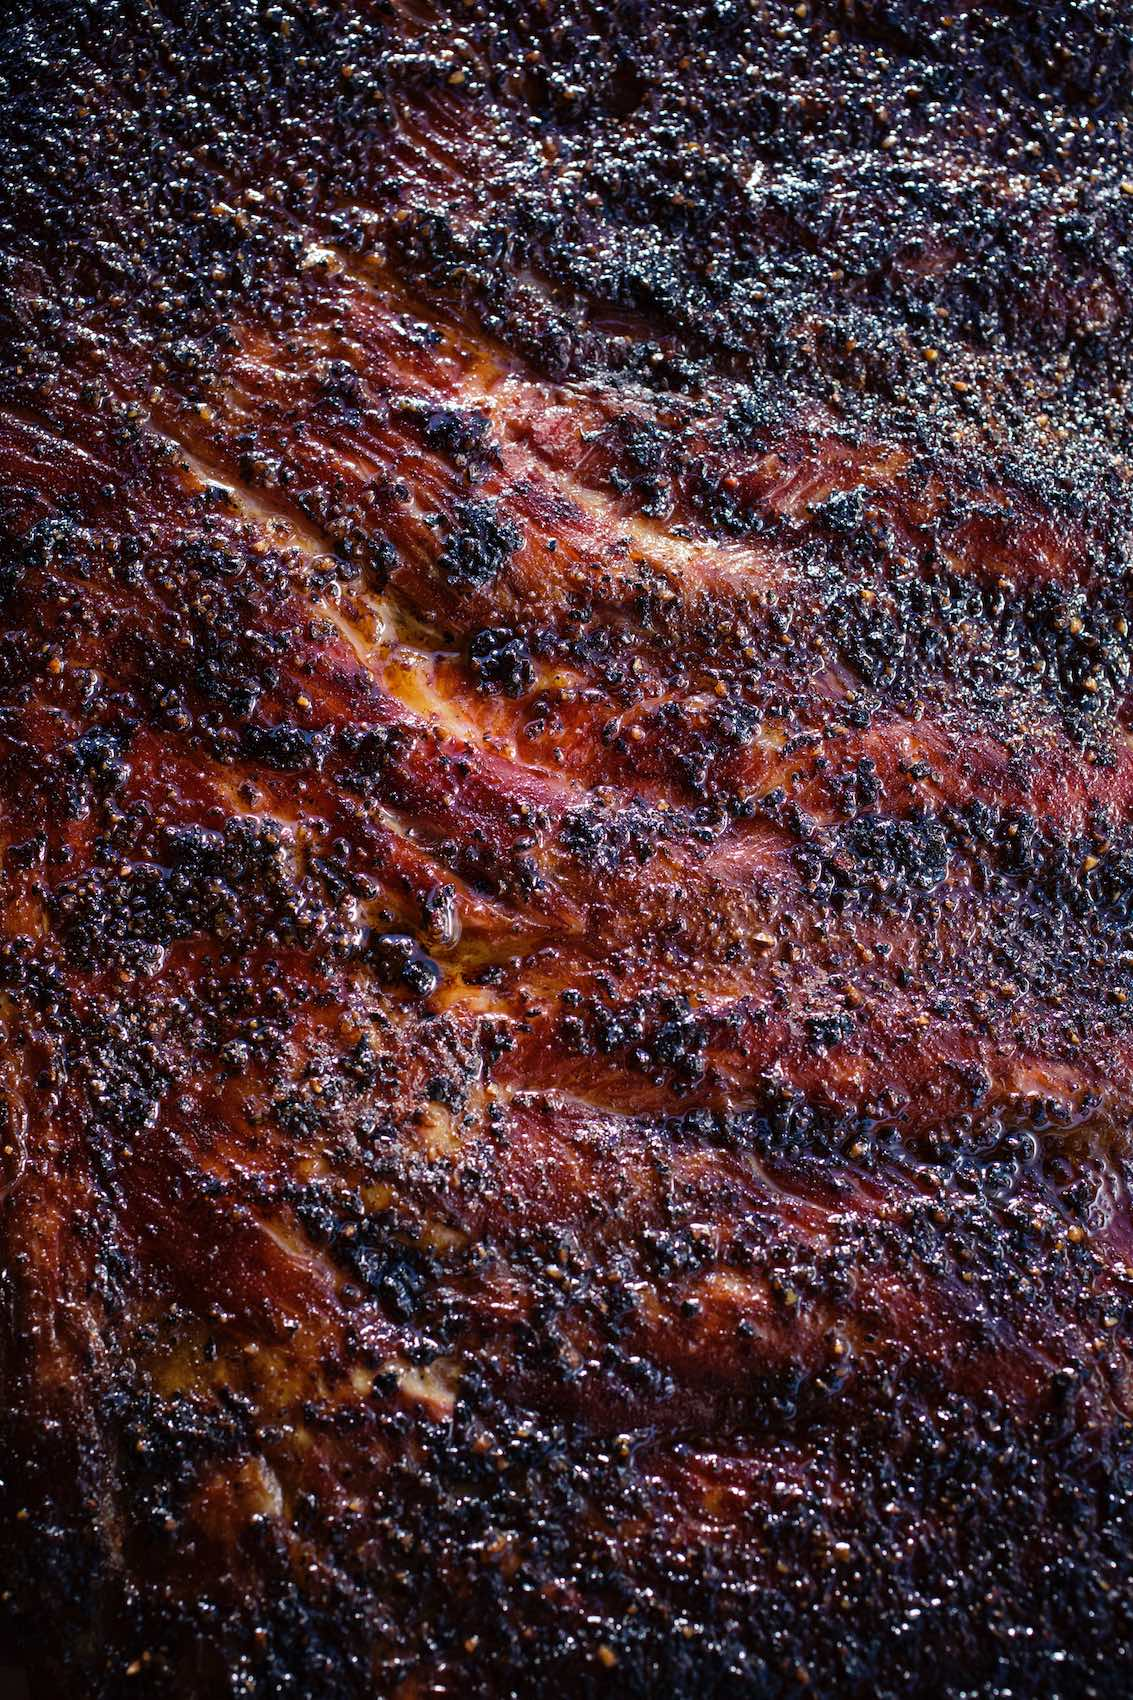 Jody Horton Photography - Barbecued meat skin.